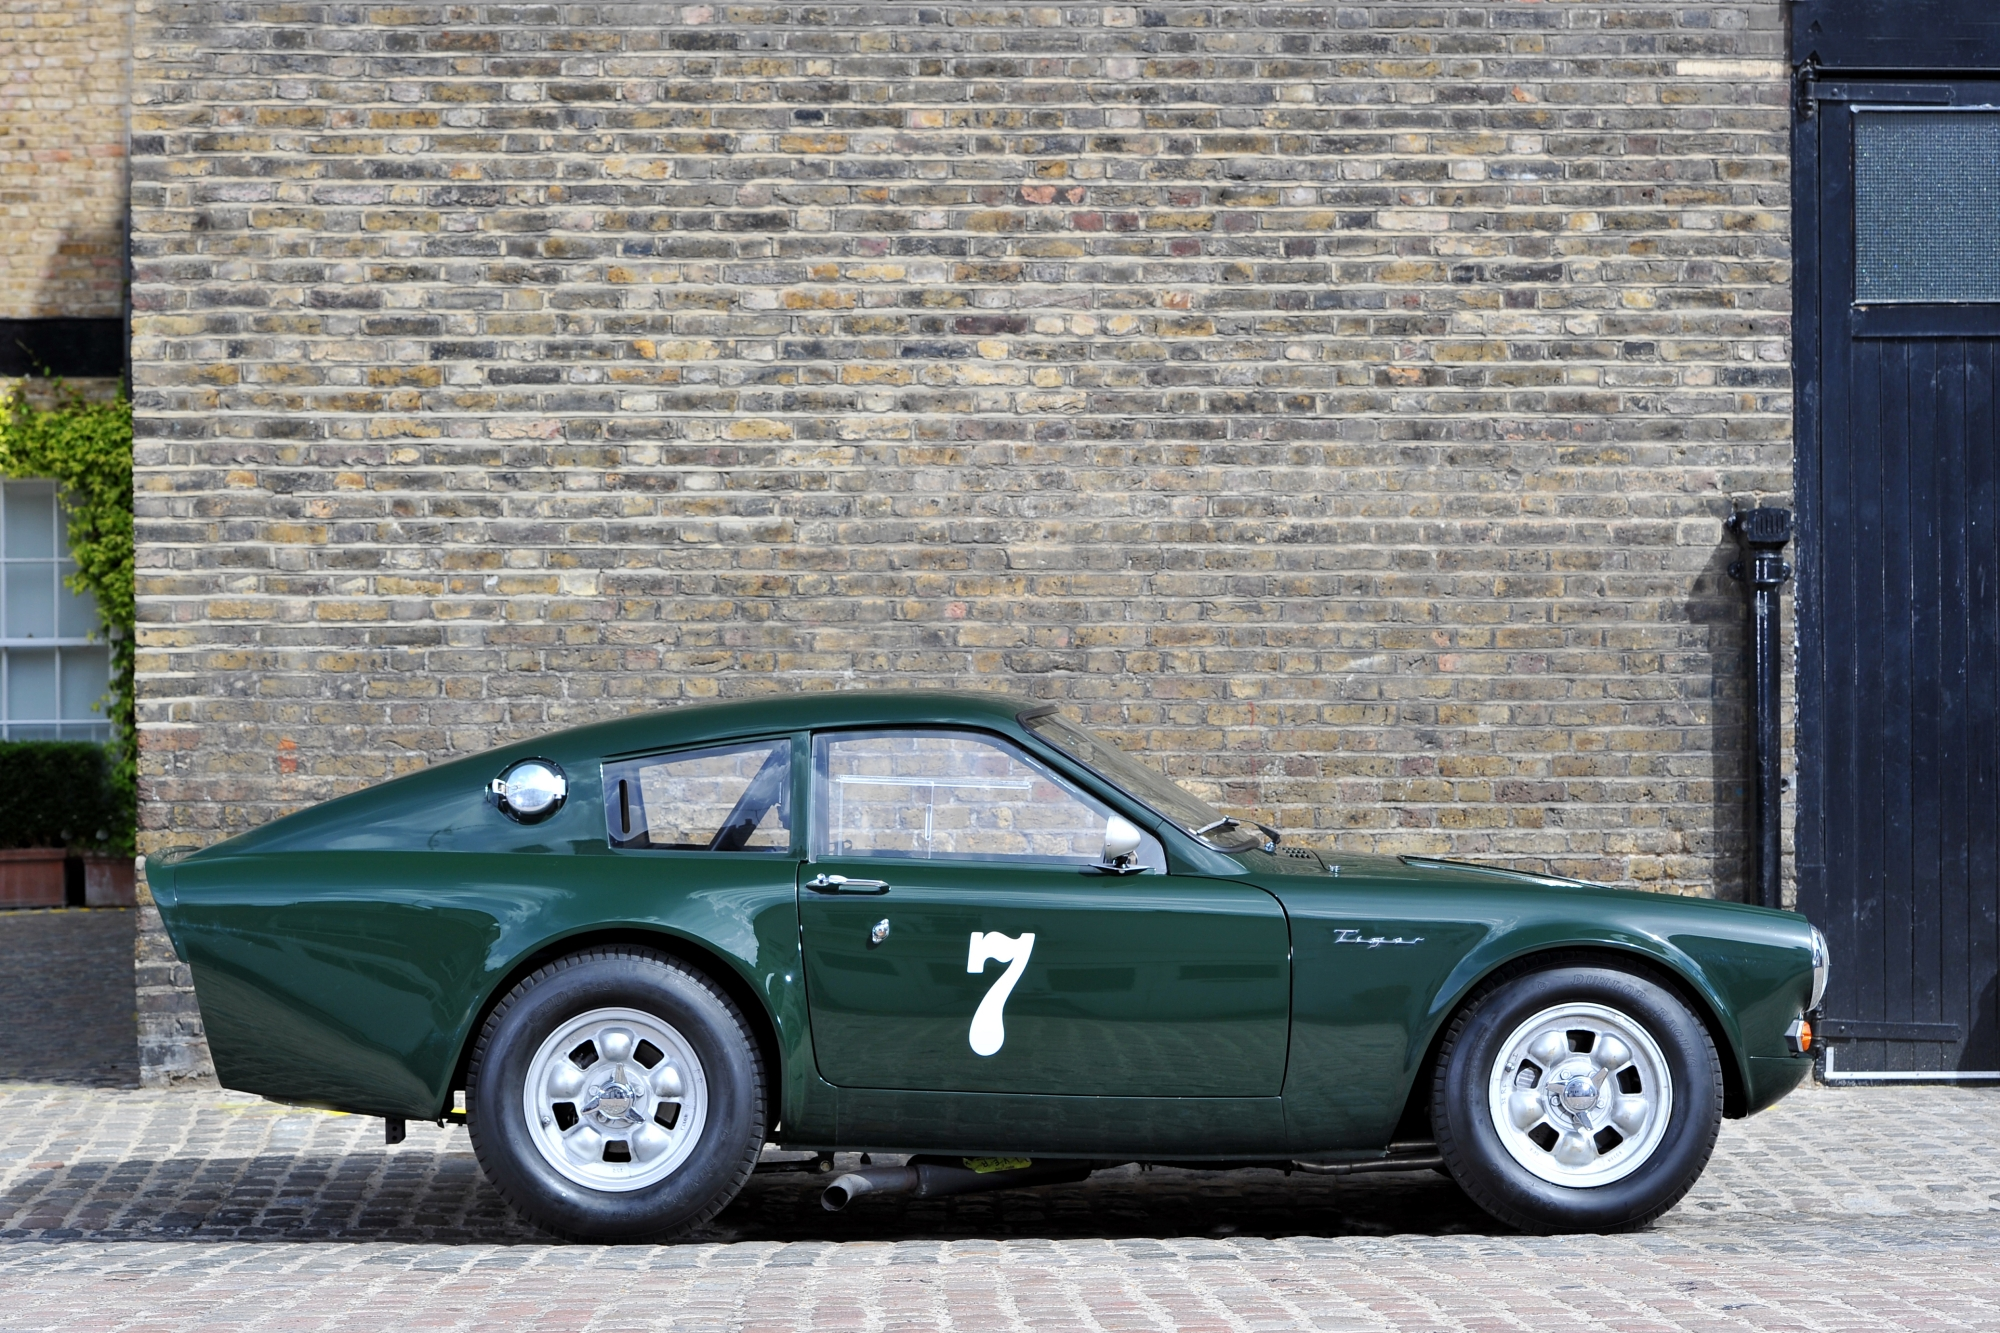 1964 Sunbeam Tiger Le Mans Coupe | Cars for sale | FISKENS